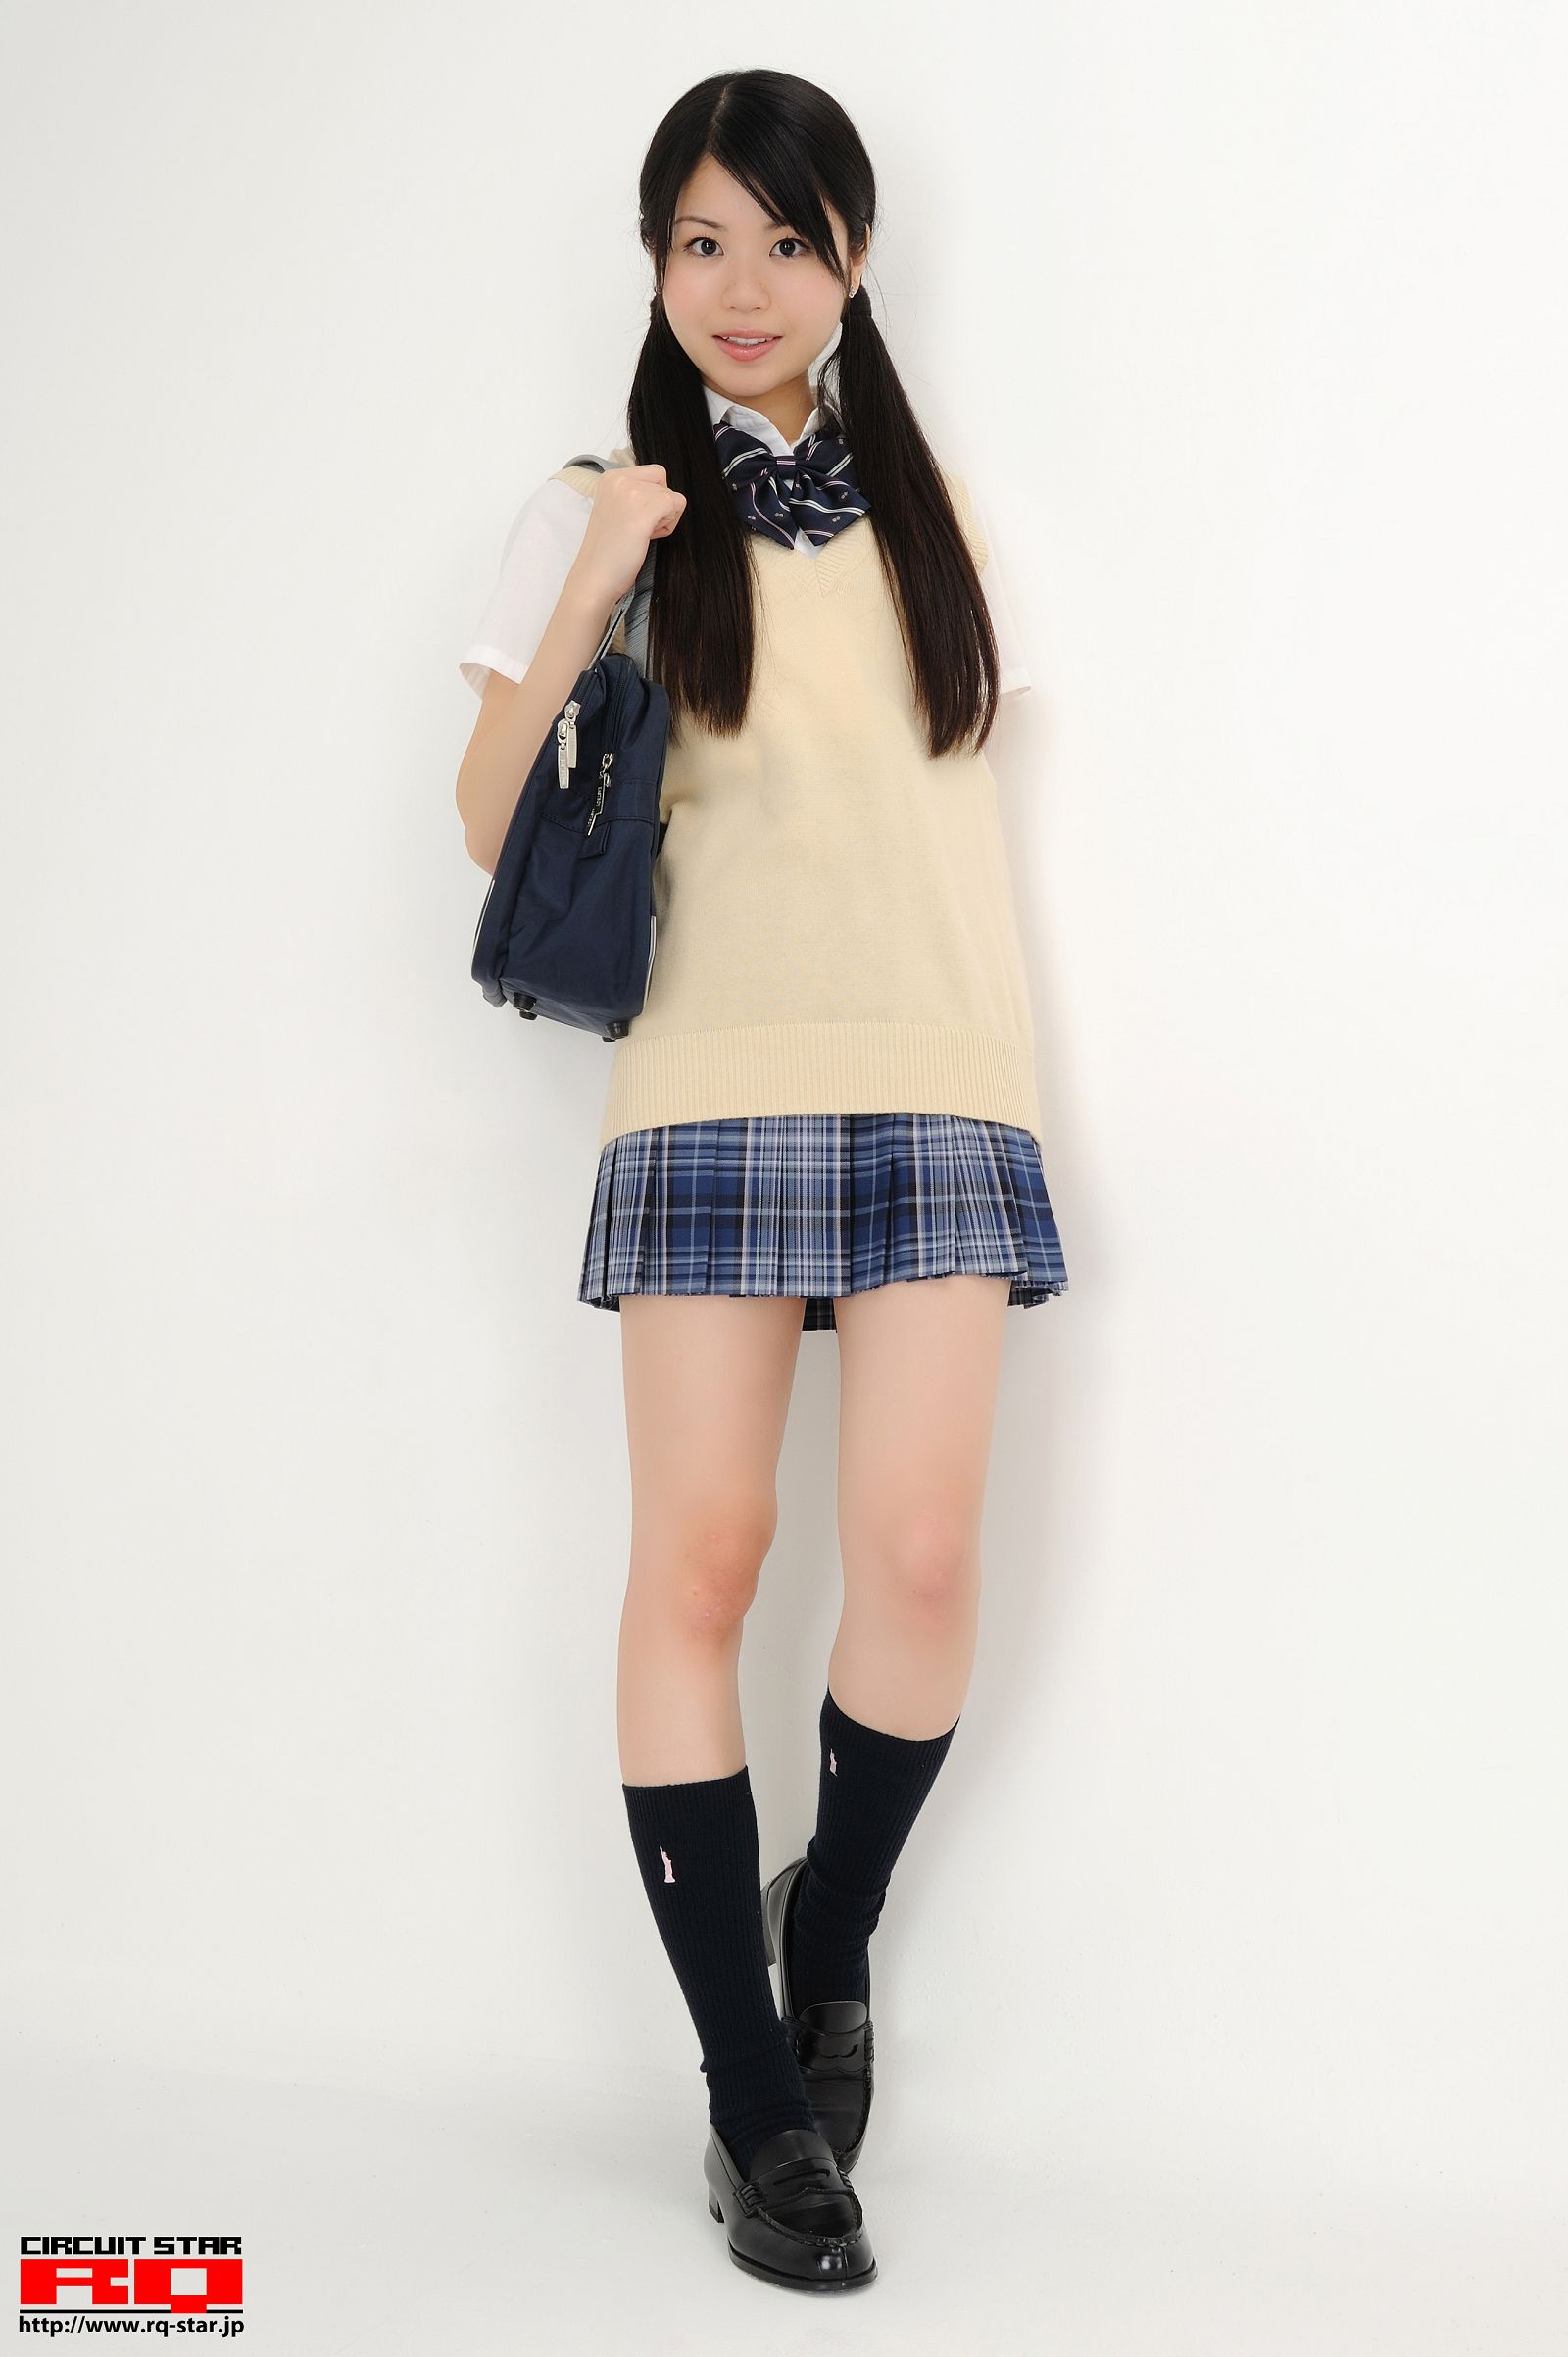 [RQ STAR美女] NO.00436 Fuyumi Ikehara 池原冬実 School Girl[85P] RQ STAR 第1张